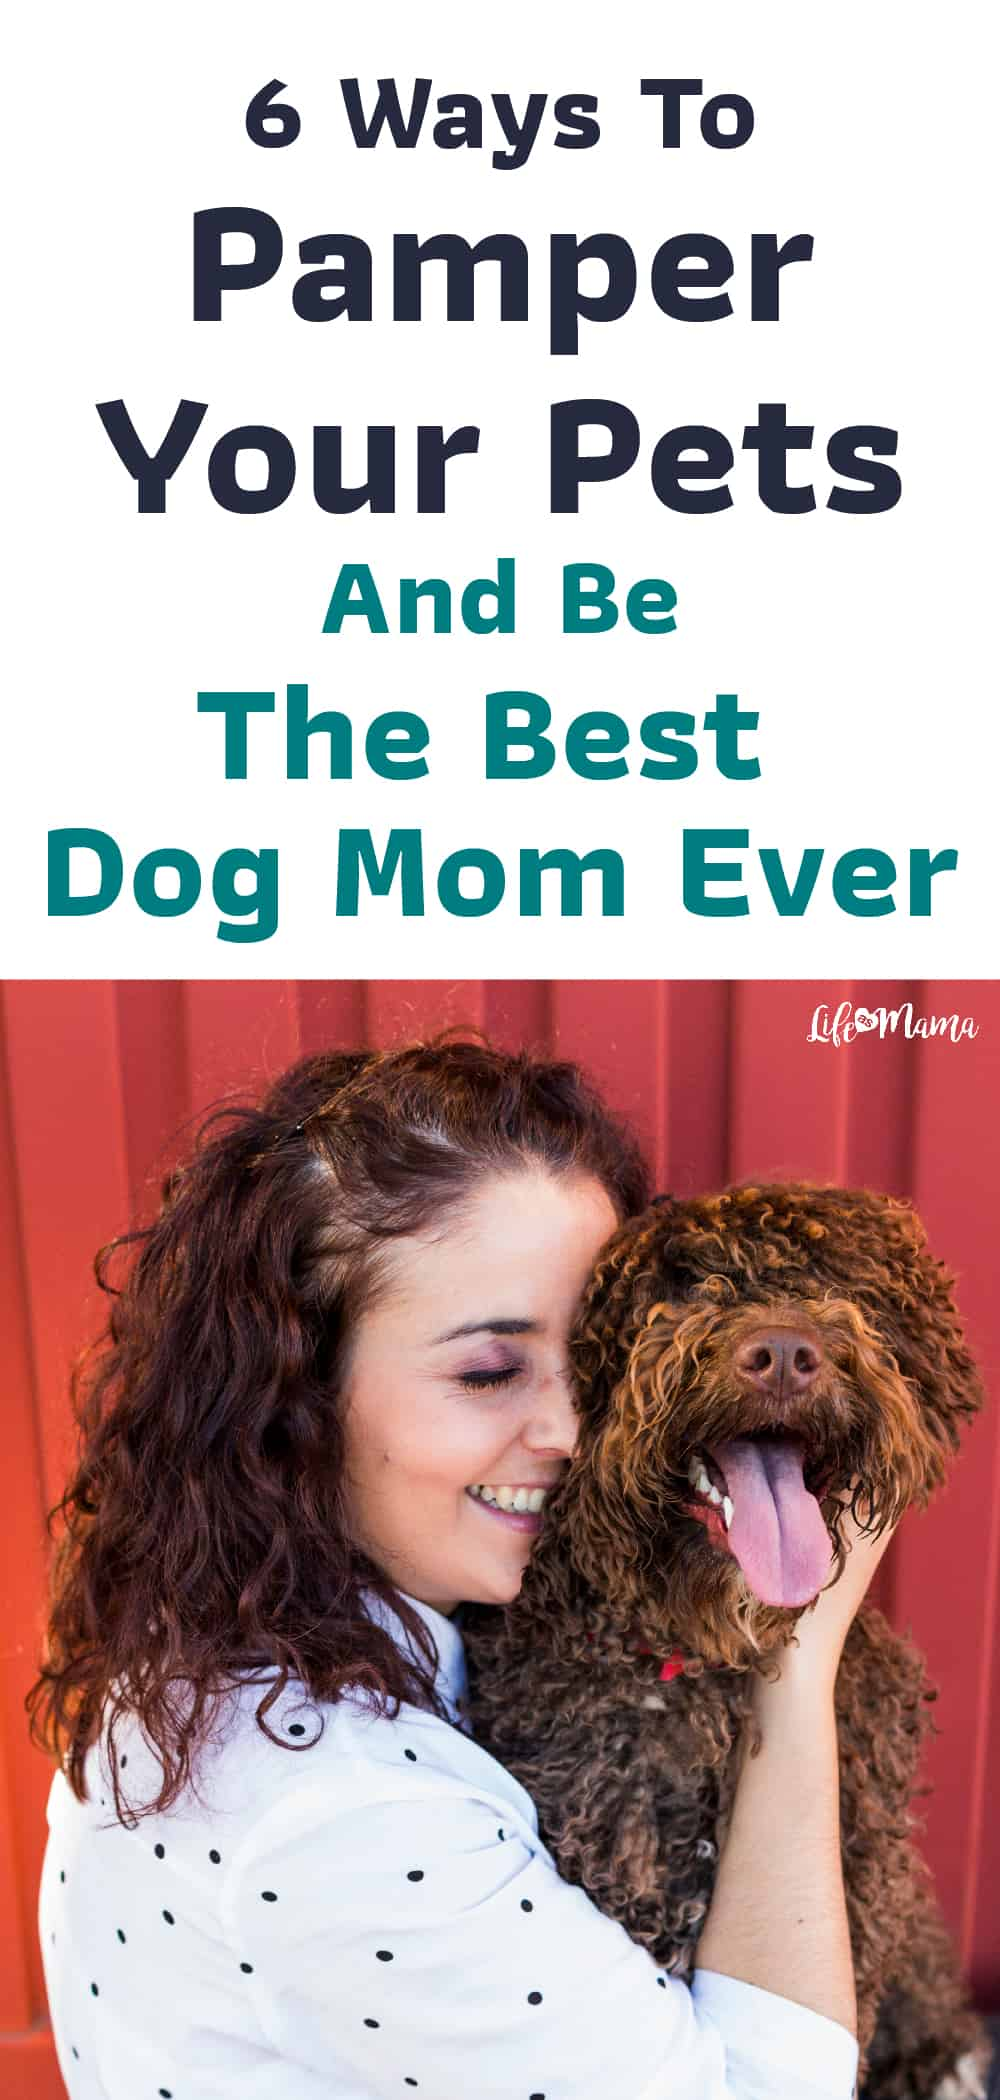 6 Ways To Pamper Your Pets And Be The Best Dog Mom Ever-01-02